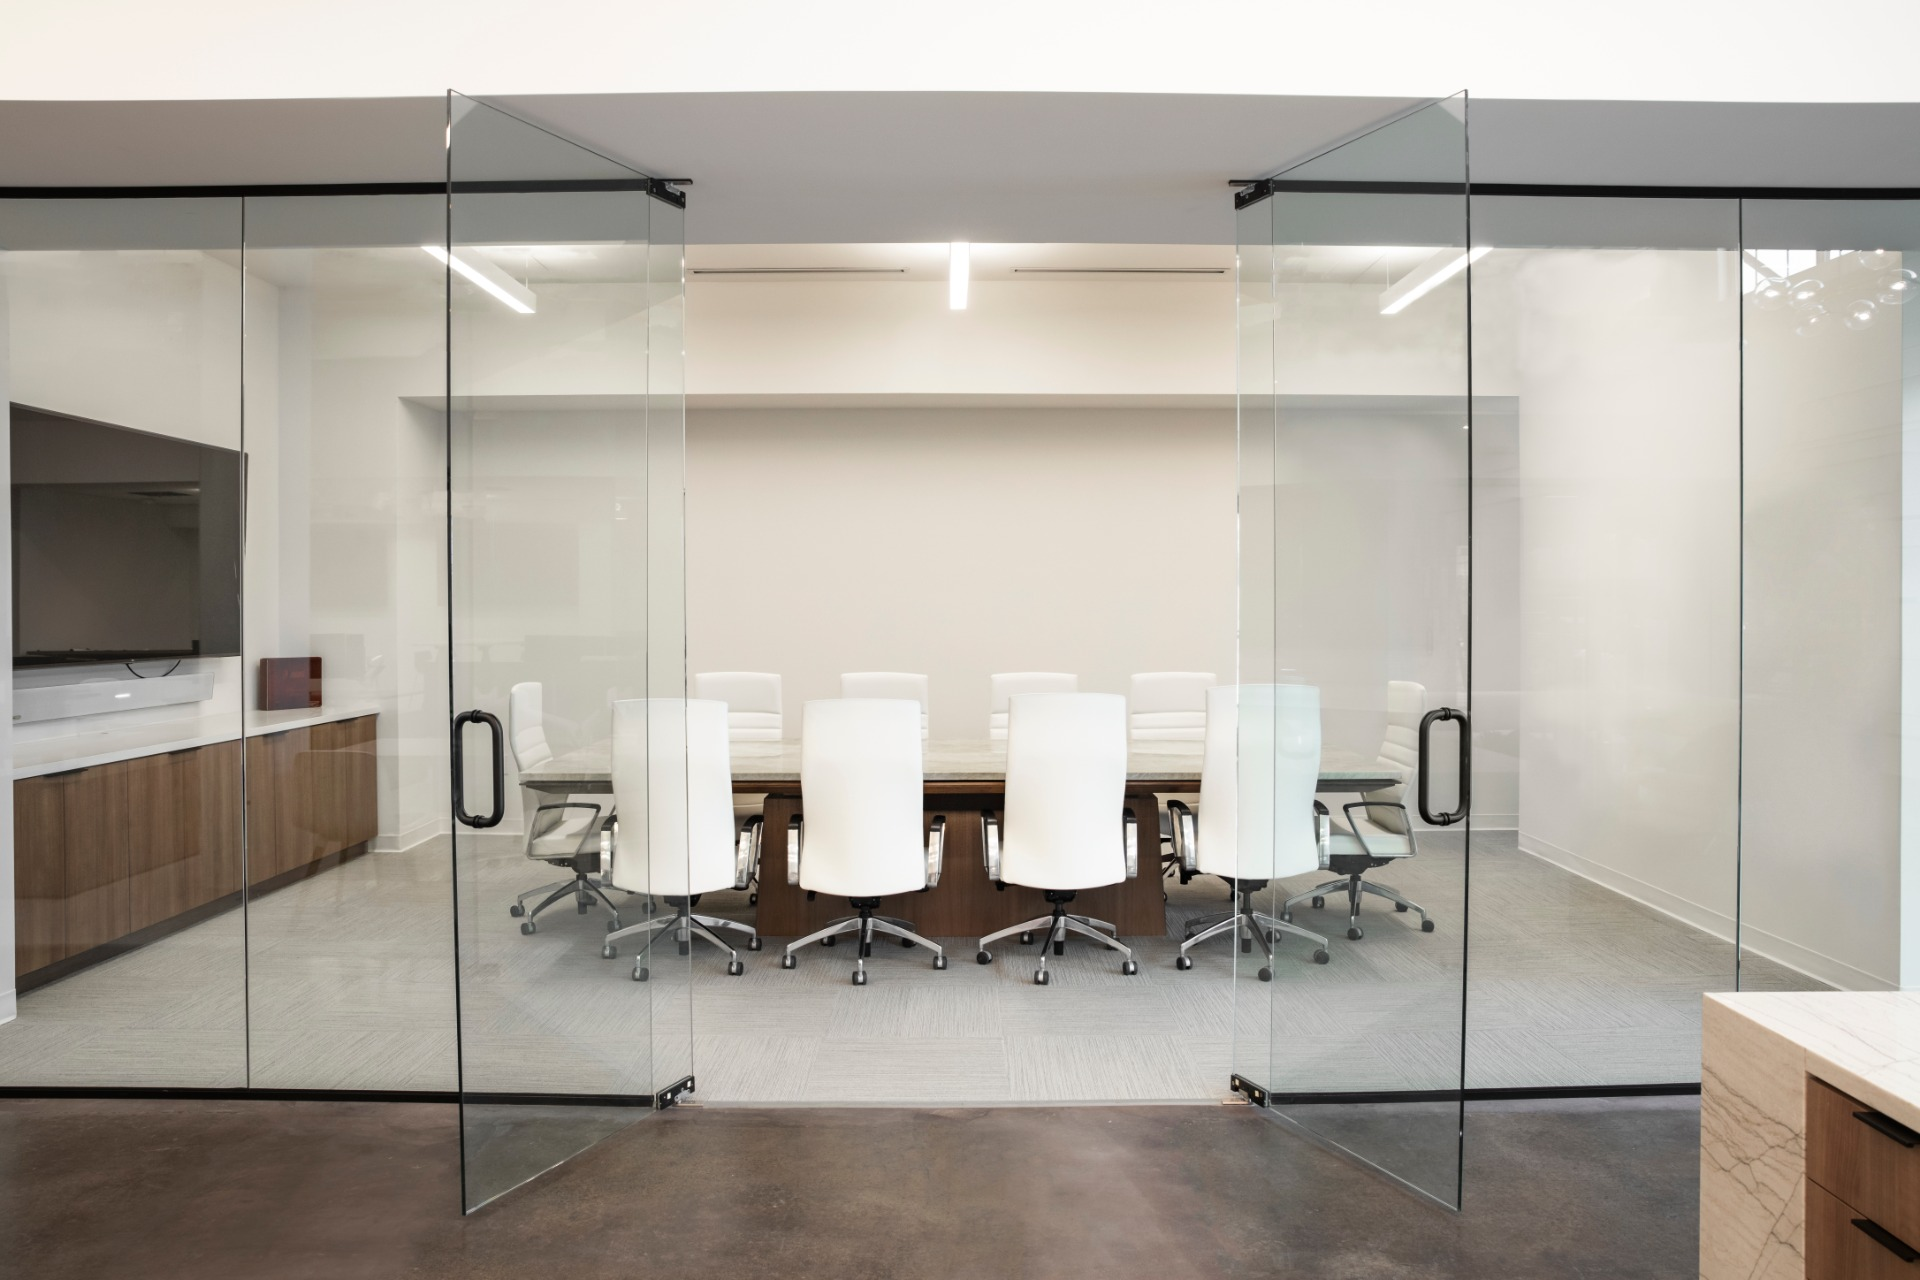 Conference room at BuildFBG's office